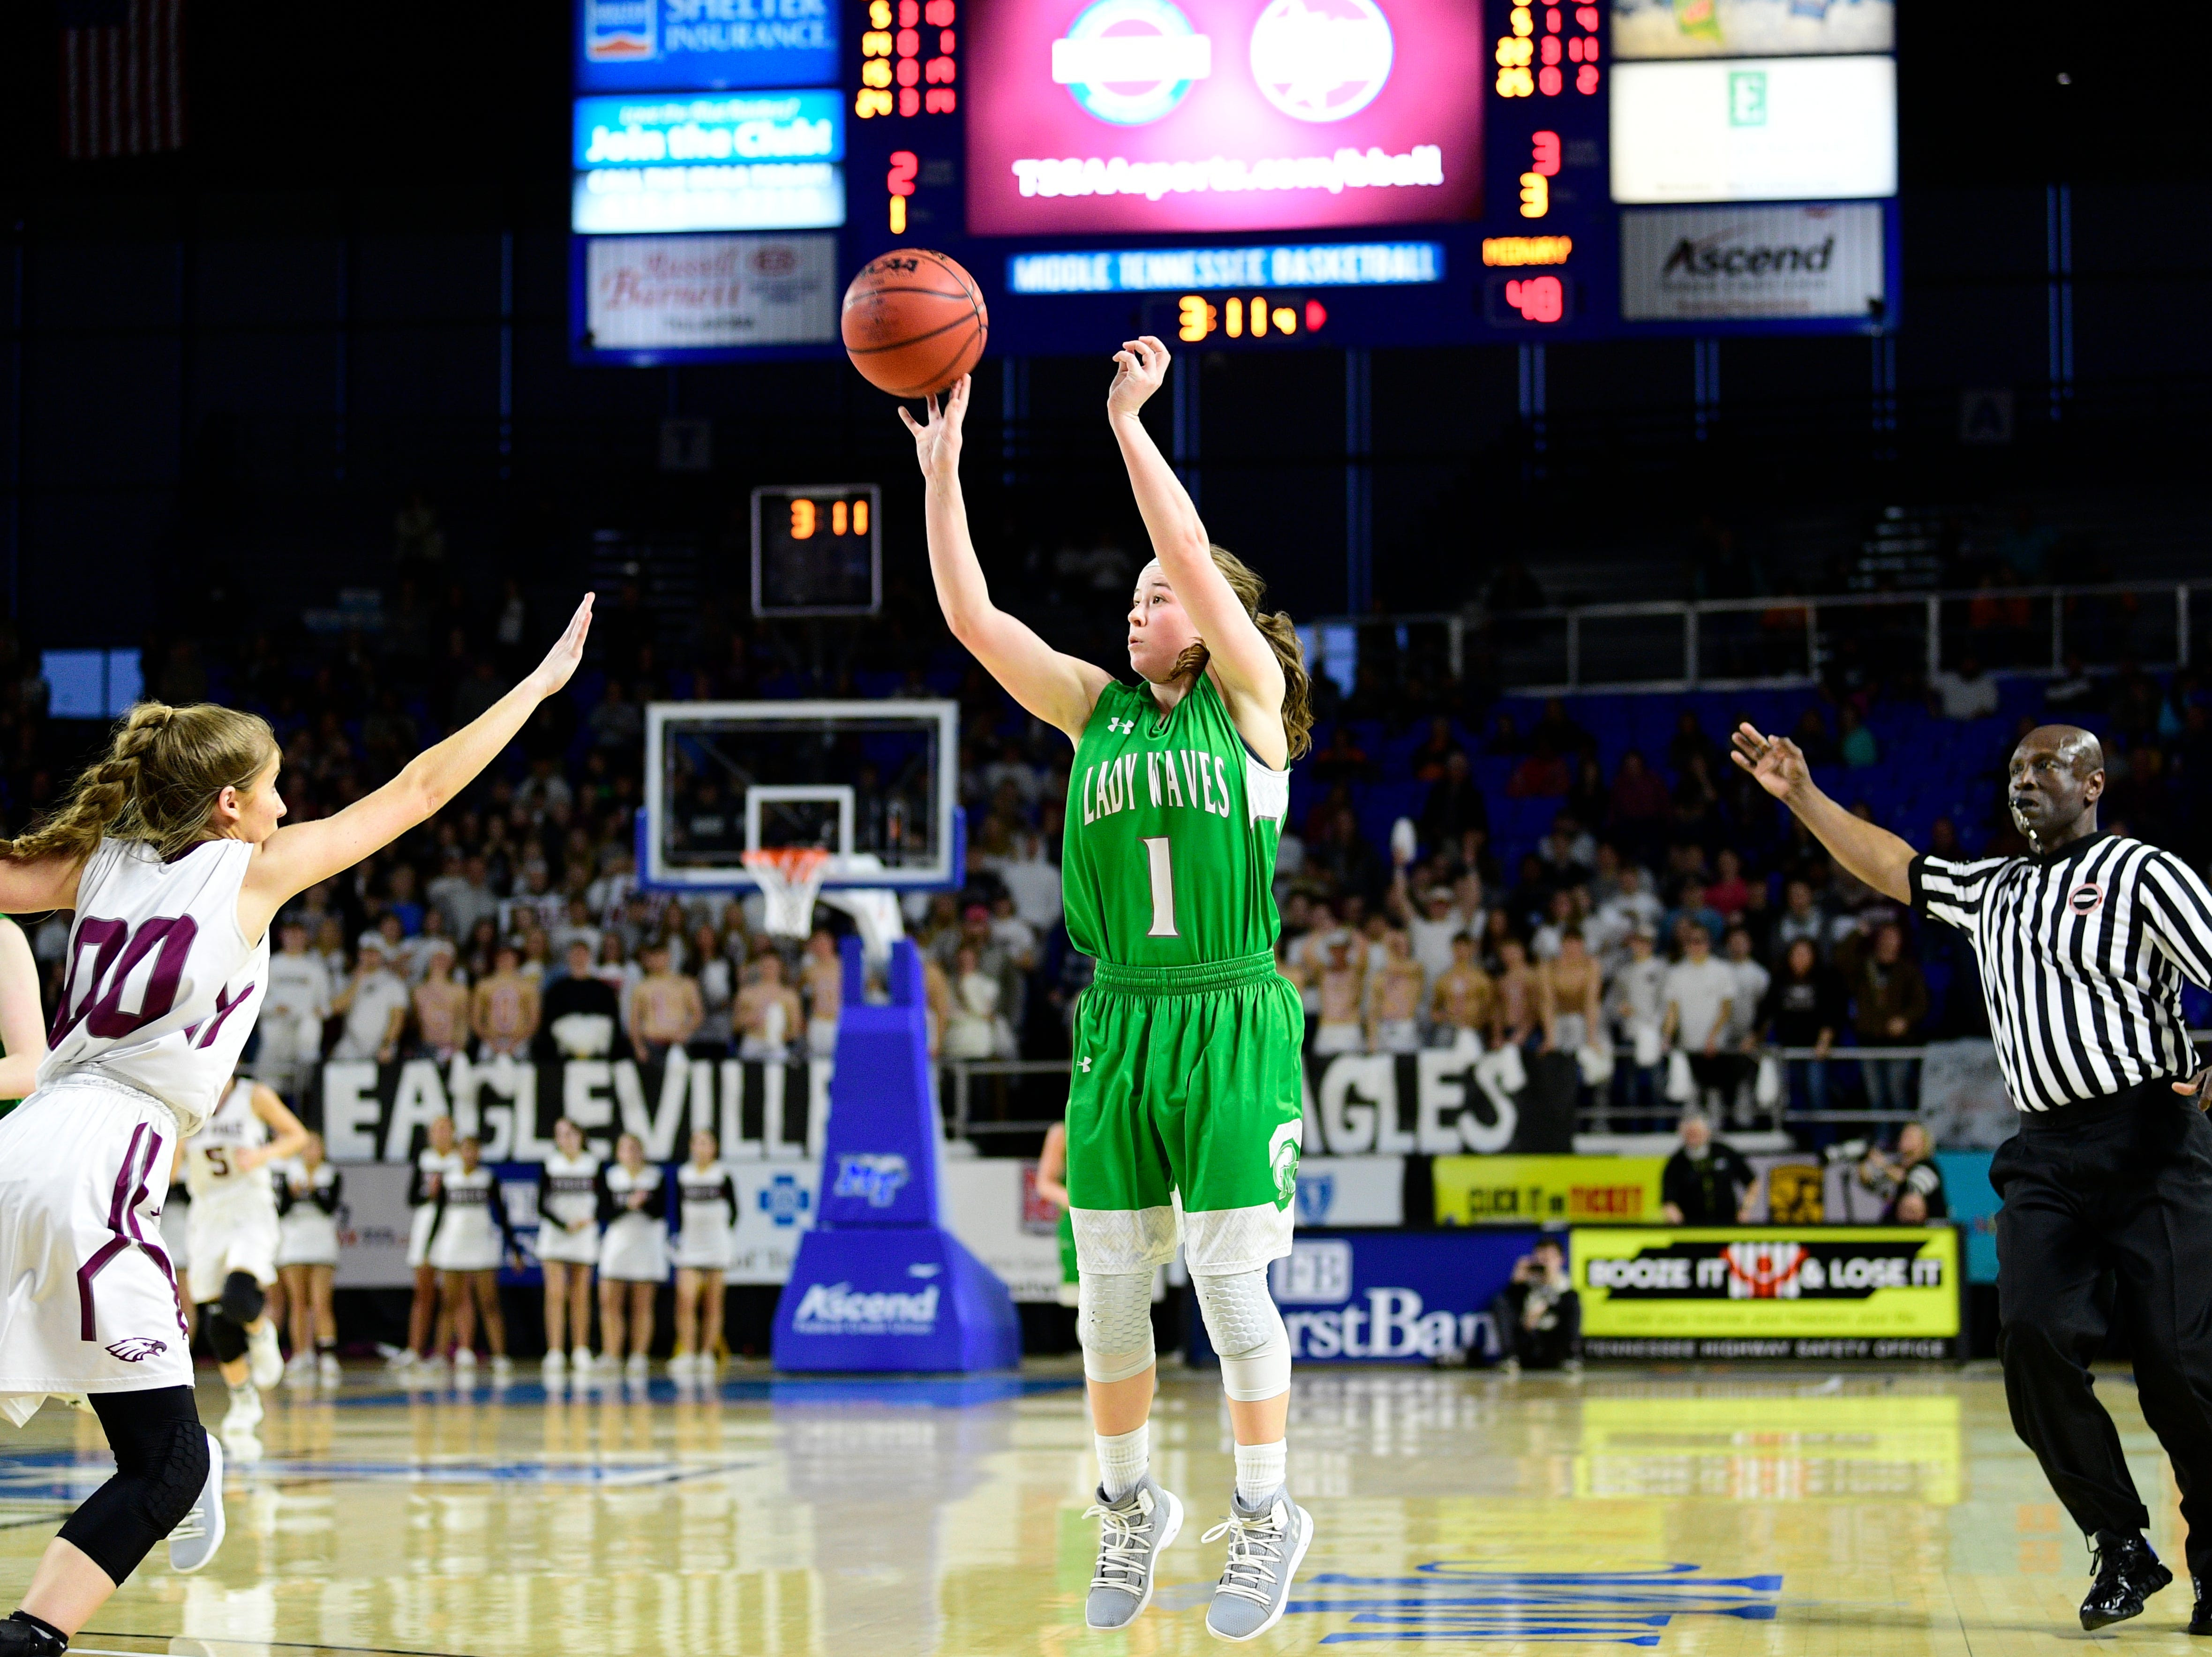 Midway's Caitlyn Ross (1) shoots a three point shot during a game between Eagleville and Midway at the TSSAA girls state tournament at the Murphy Center in Murfreesboro, Tennessee on Thursday, March 7, 2019.